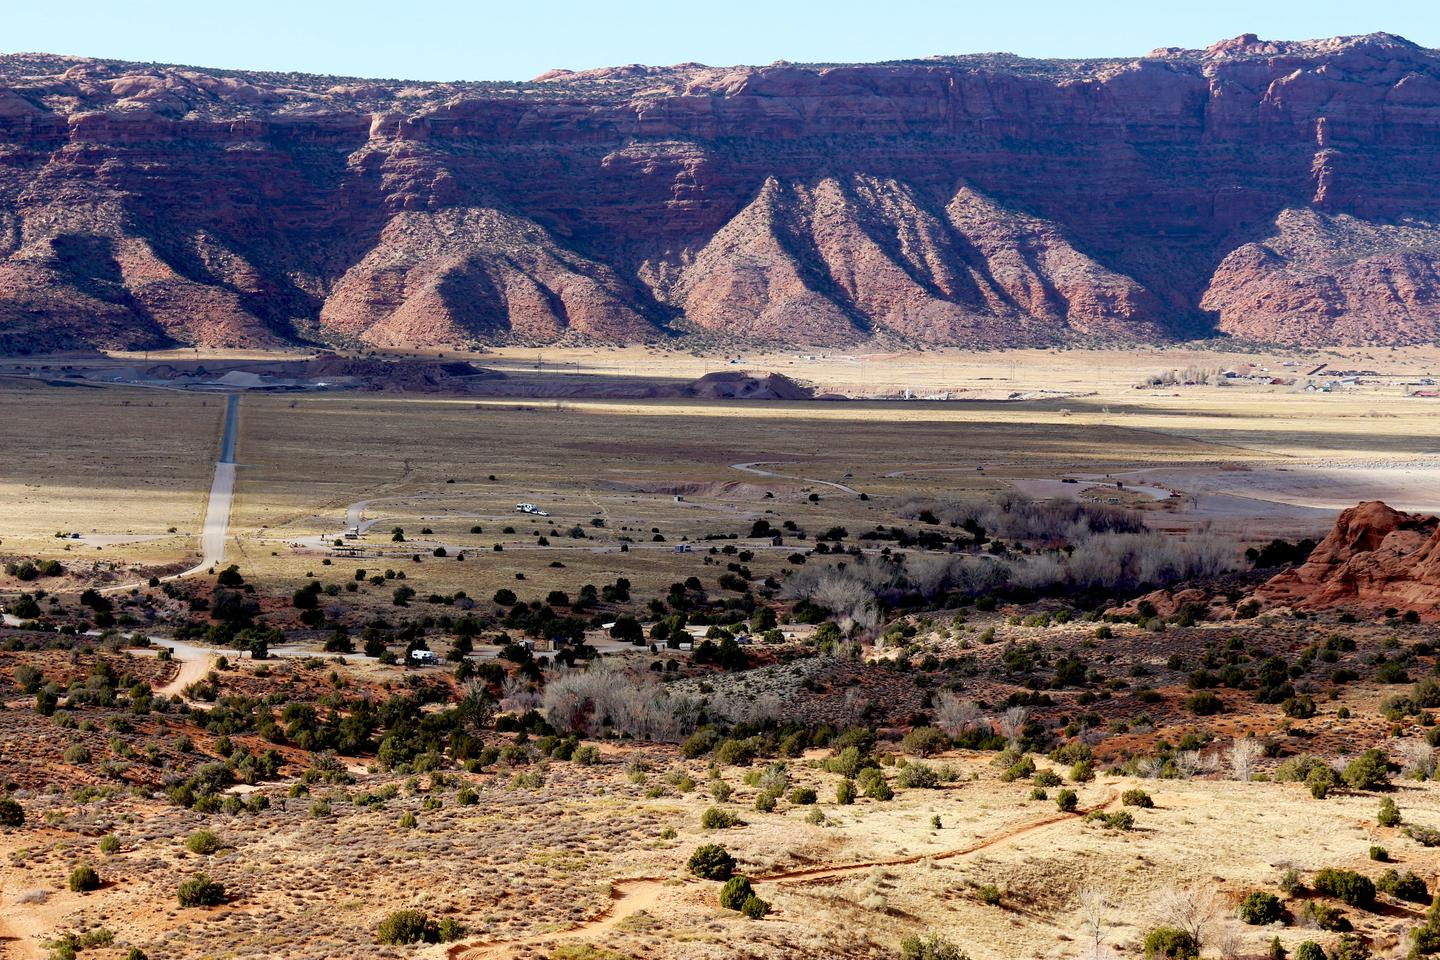 Overview of Ken's Lake Campground with red rock cliffs in the distance.